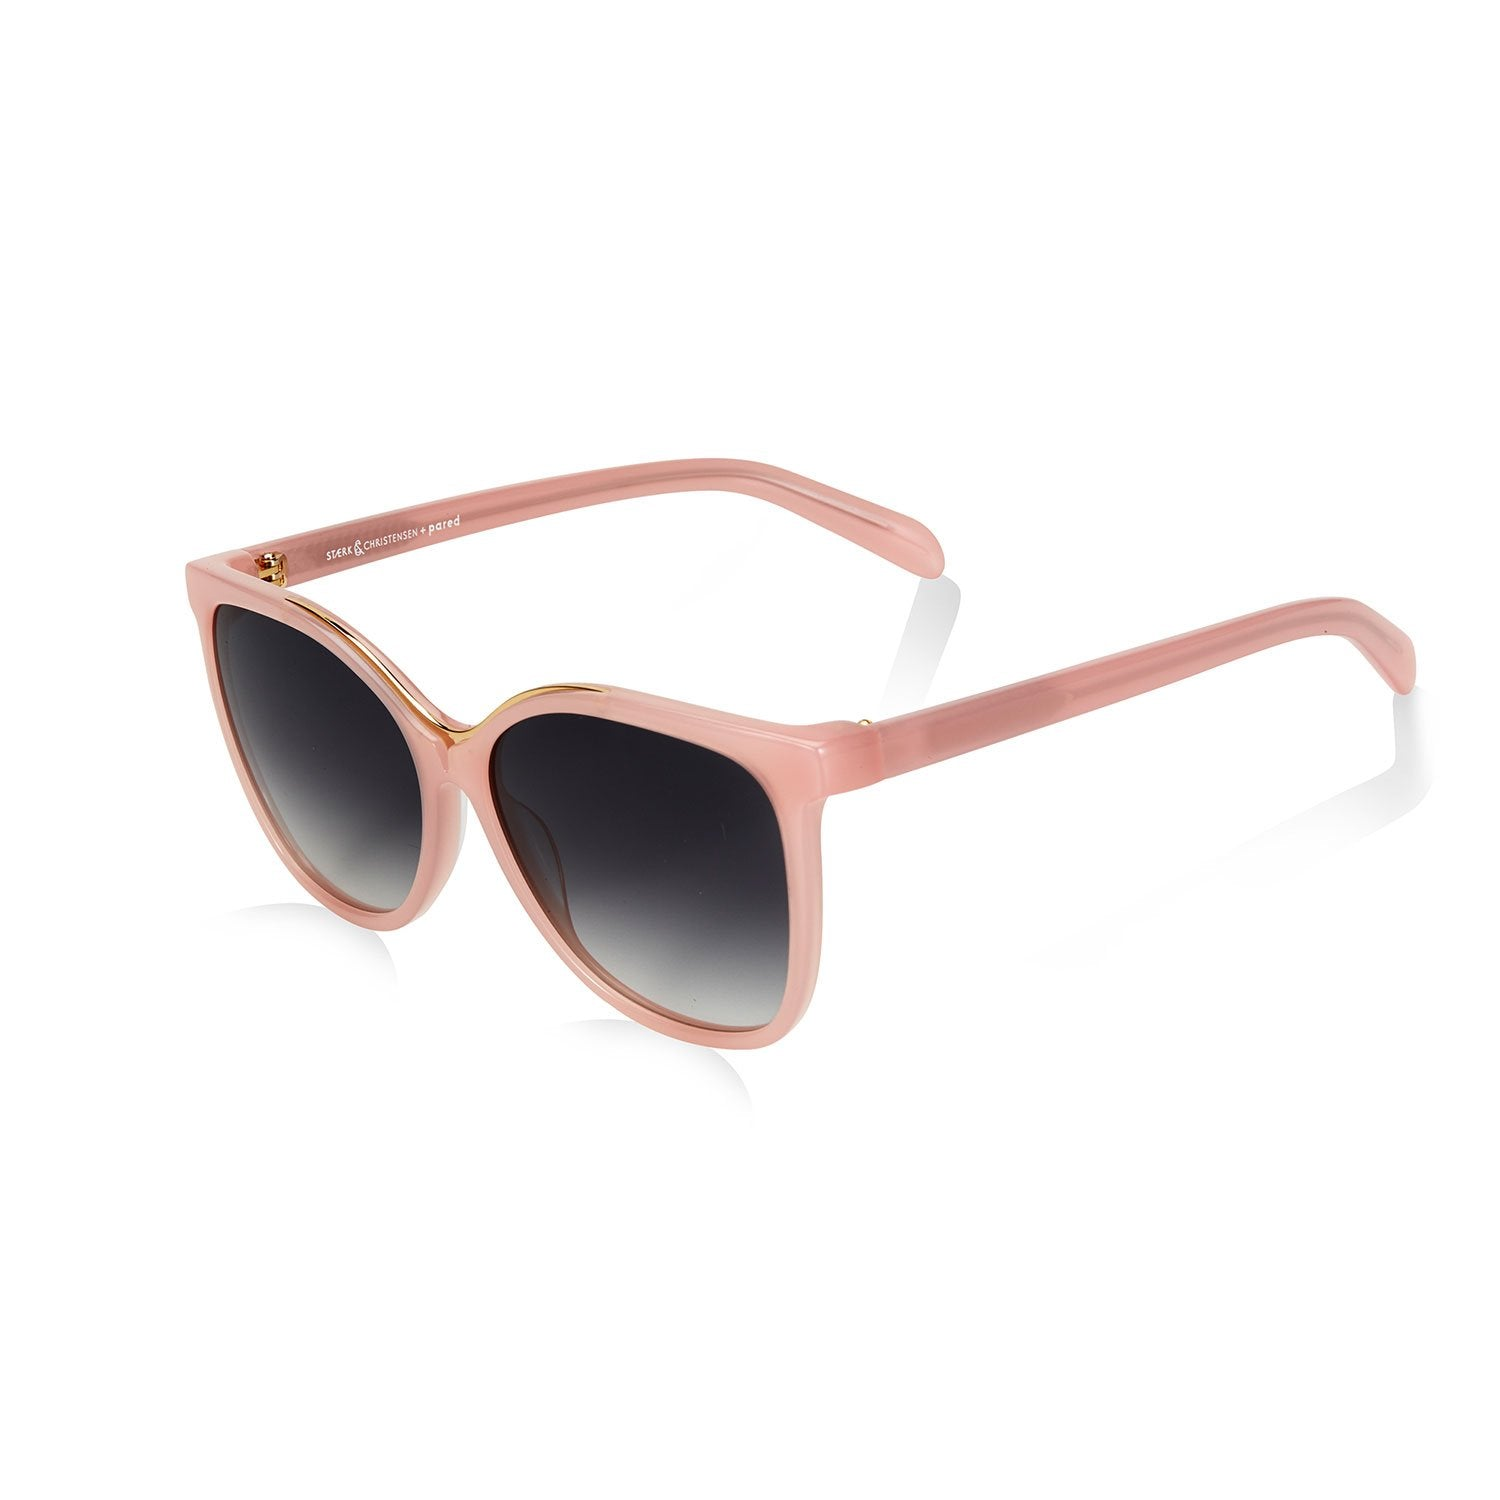 SWALLOW 3 SUNGLASSES - BLUSH PINK GOLD - PARED EYEWEAR